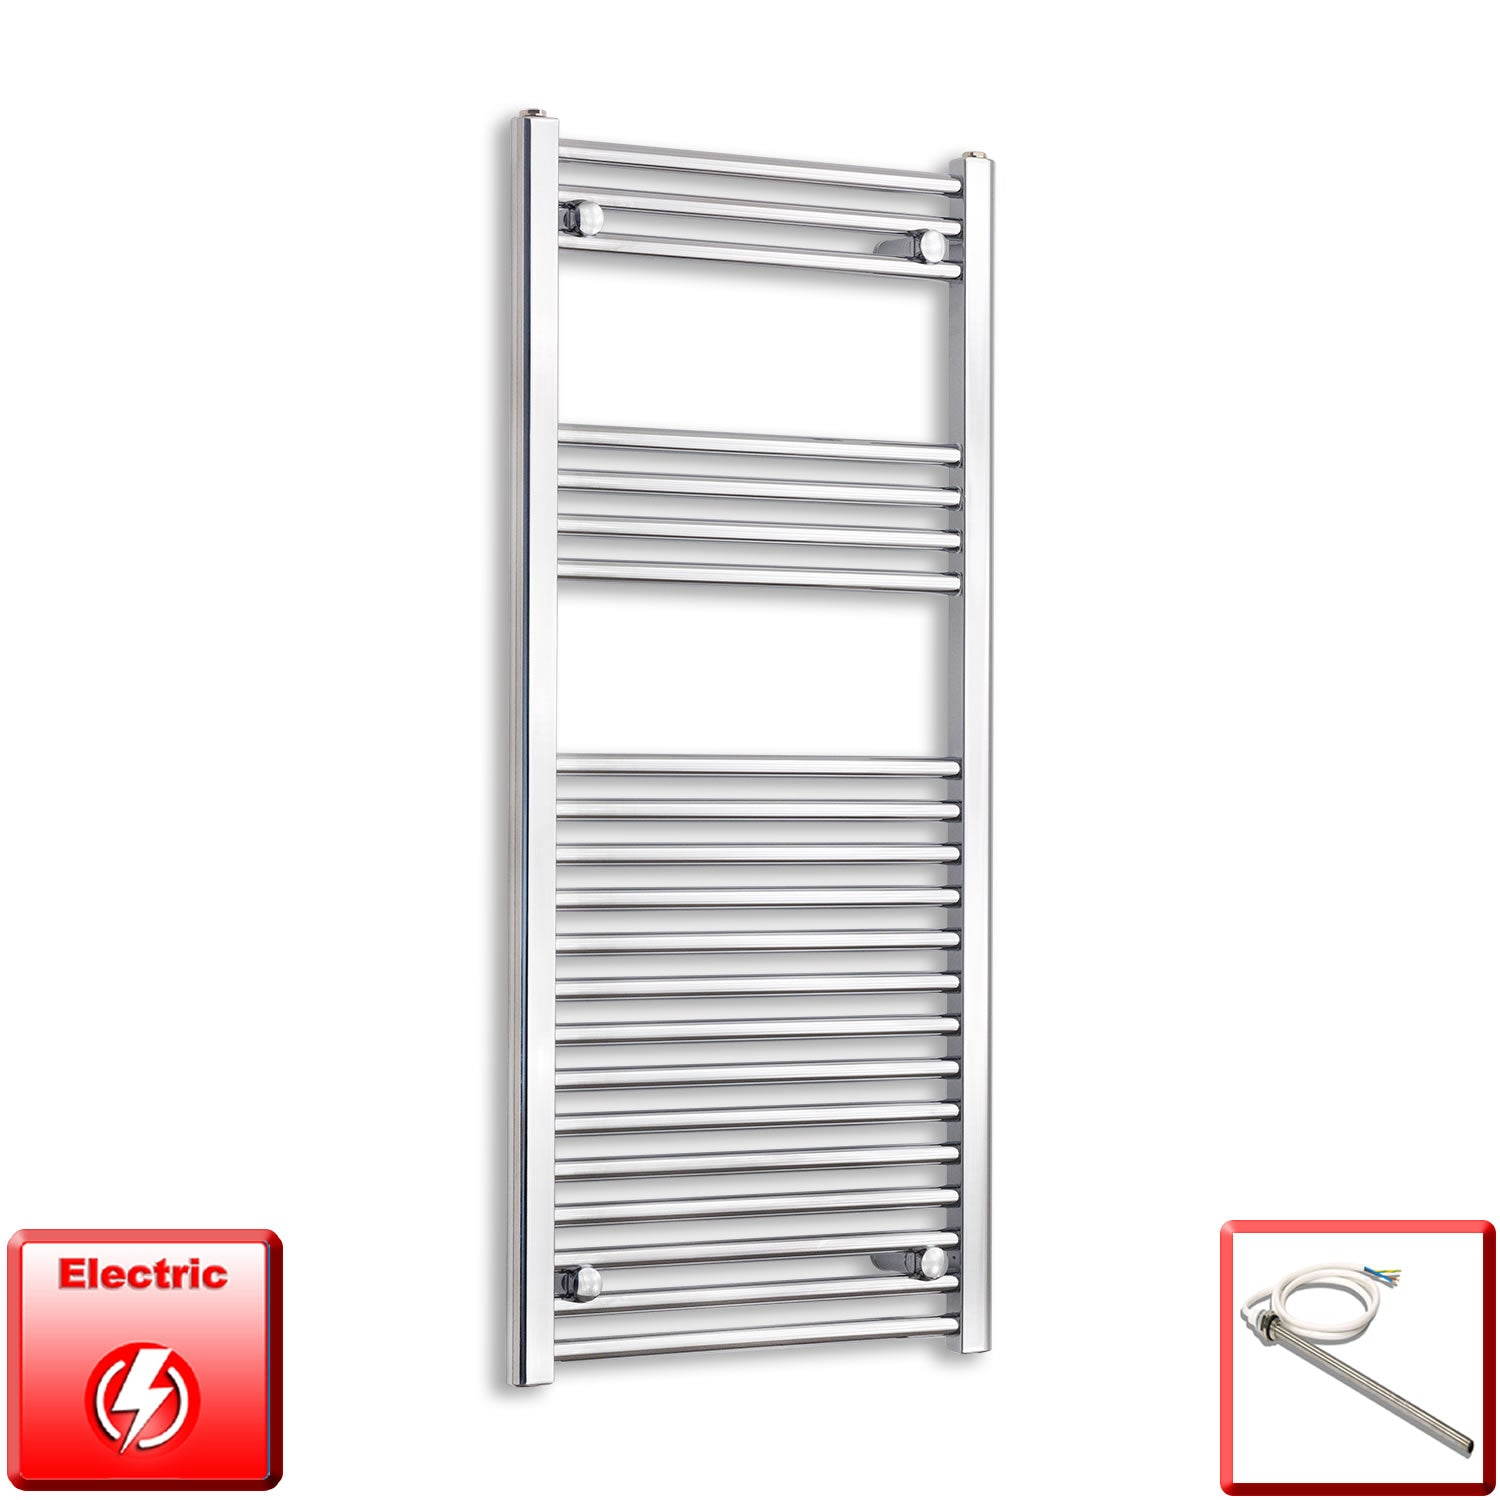 500mm Wide 1118mm High Pre-Filled Electric Heated Towel Rail Radiator Chrome HTR,Single Heat